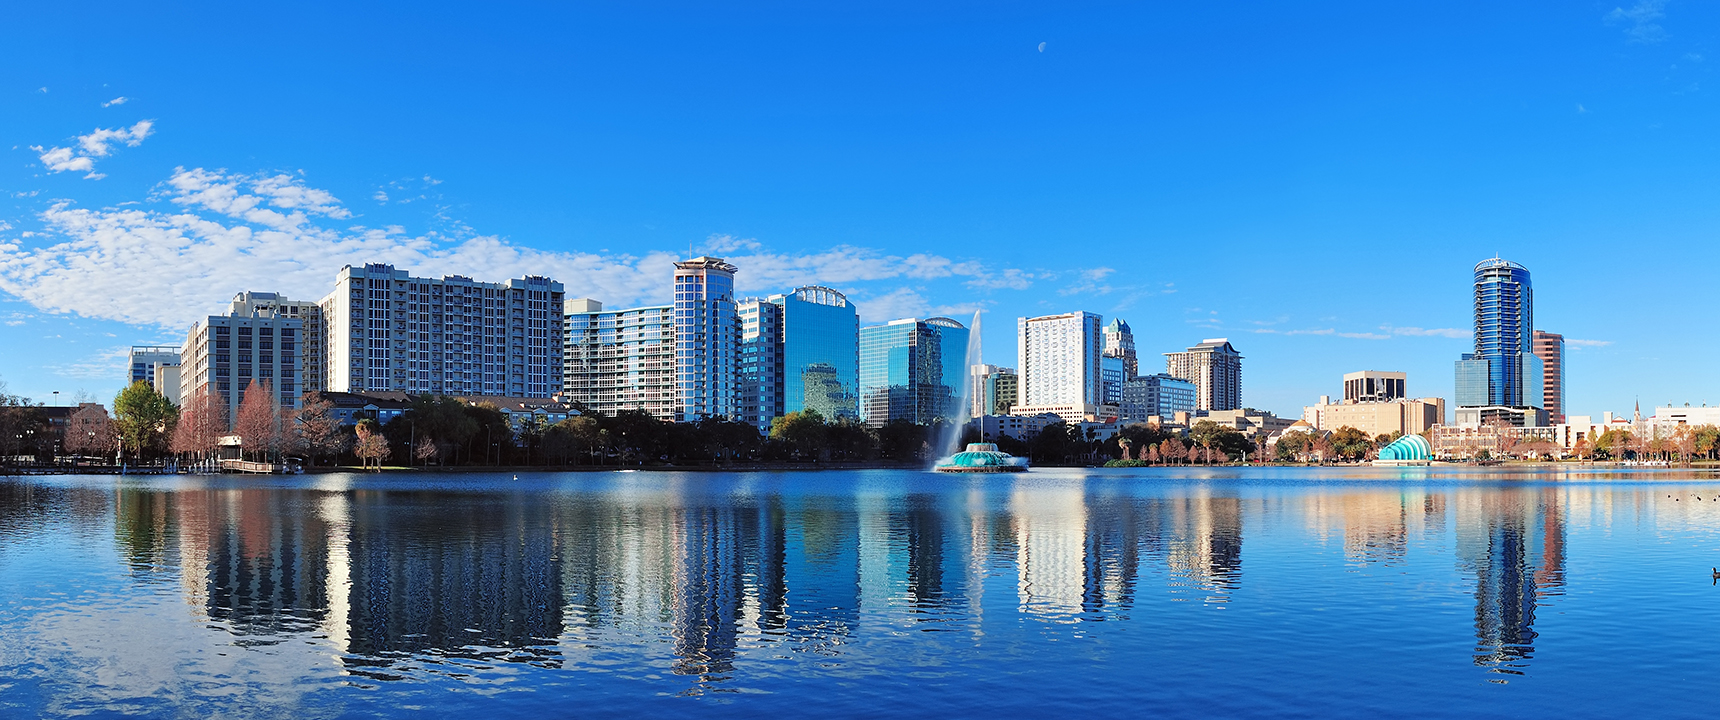 Photo of Orlando Florida where the Central Florida Business Center is located.